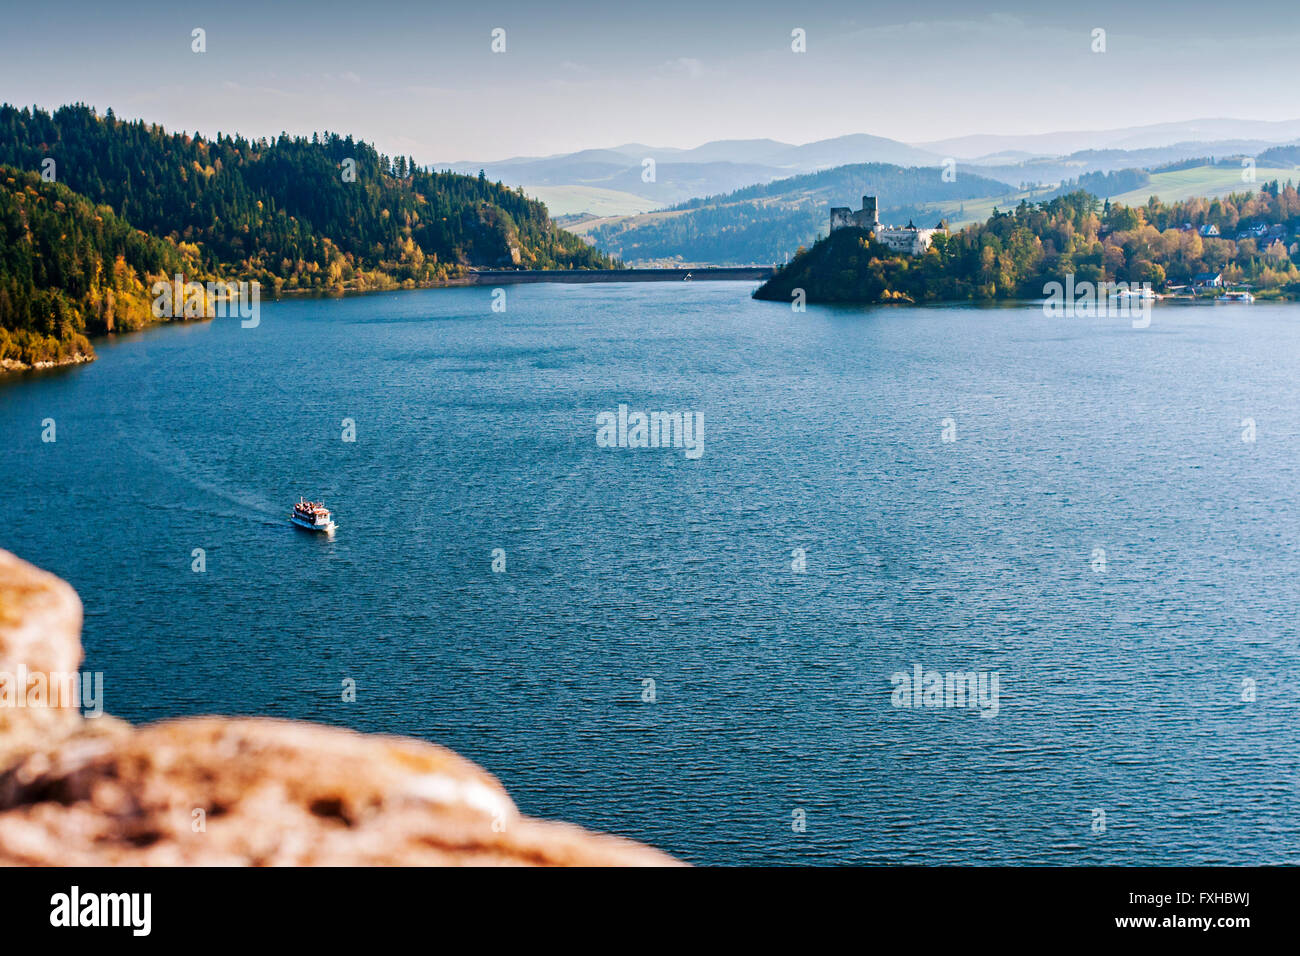 Lonely boat on the calm lake among the Pieniny mountains in Poland - Stock Image